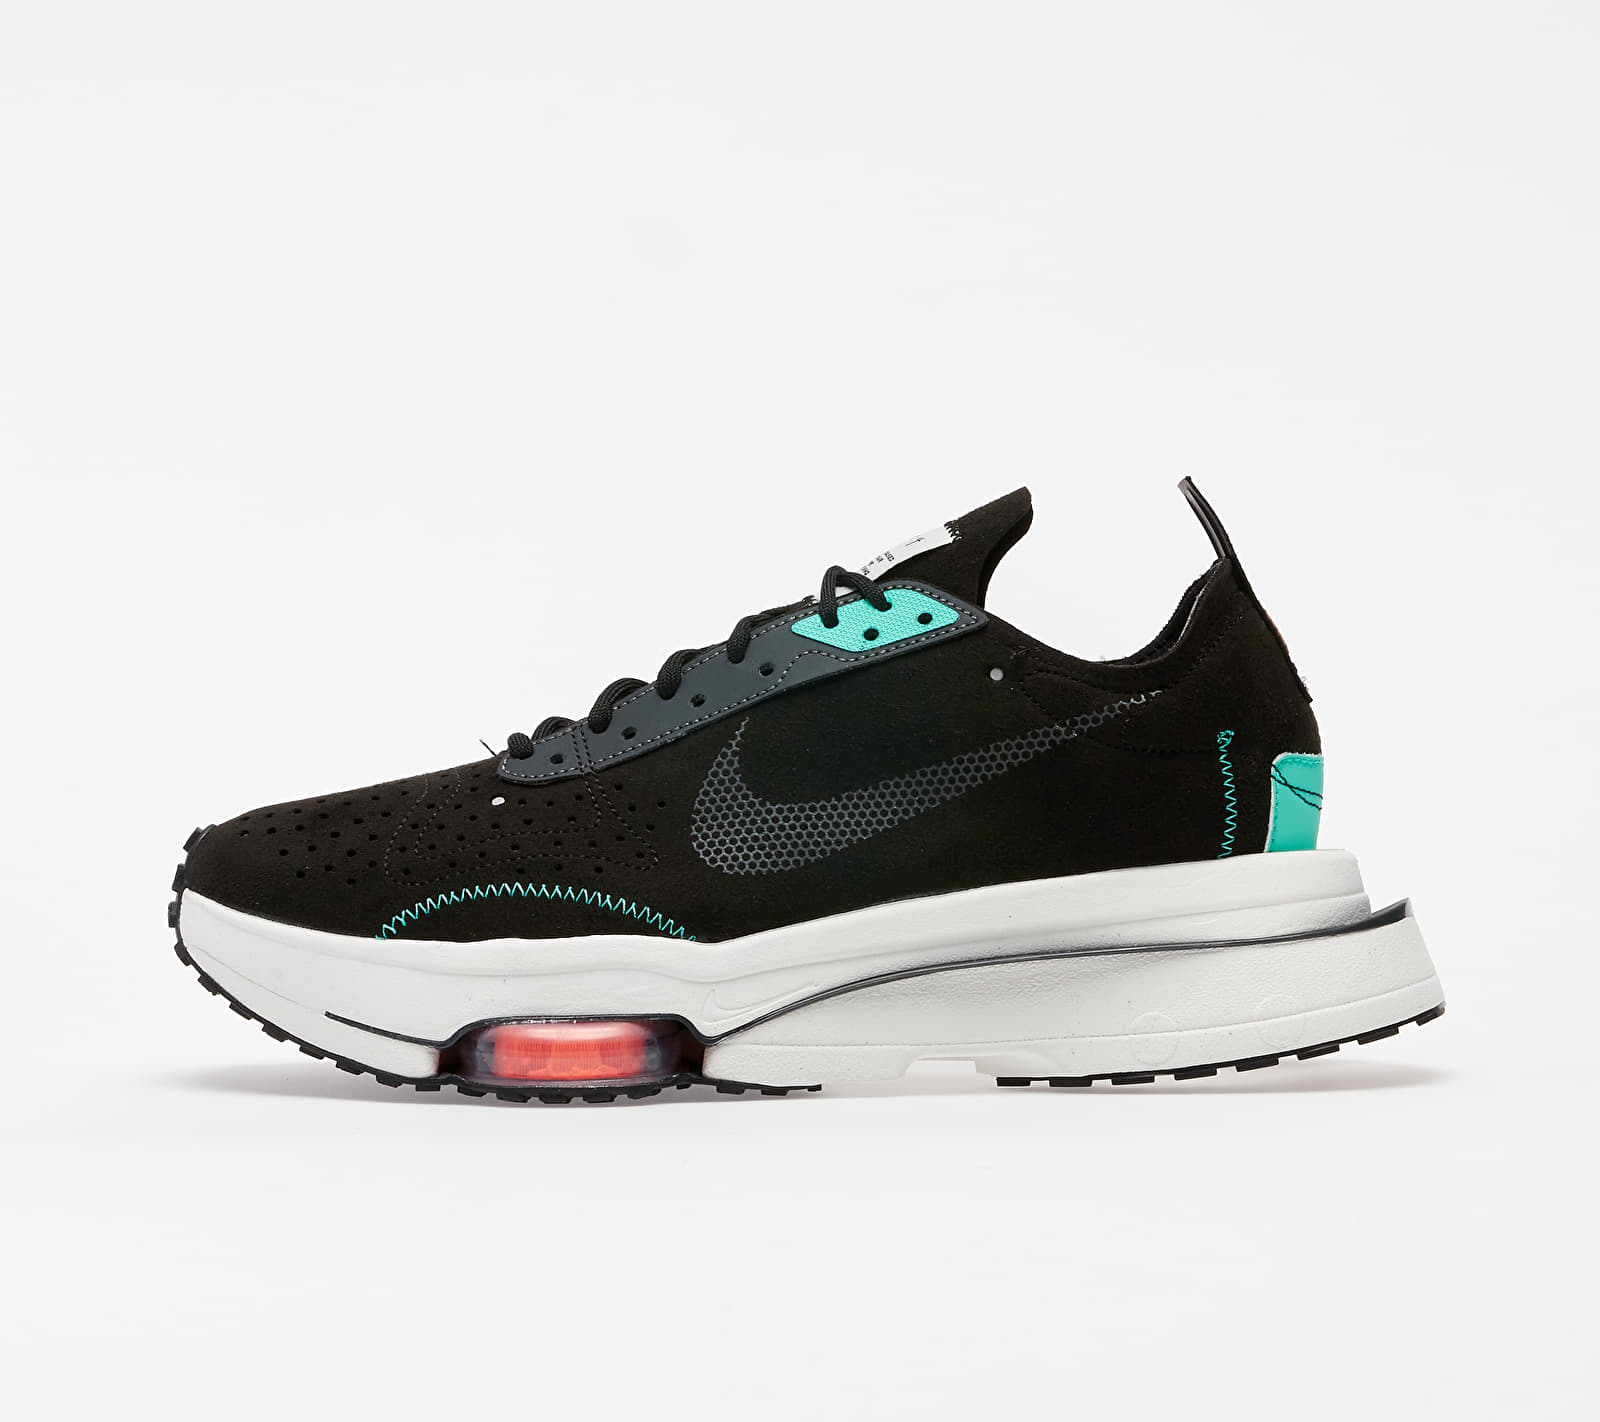 Nike Air Zoom-Type Black/ Summit White-Menta-Orange Trance CJ2033-010